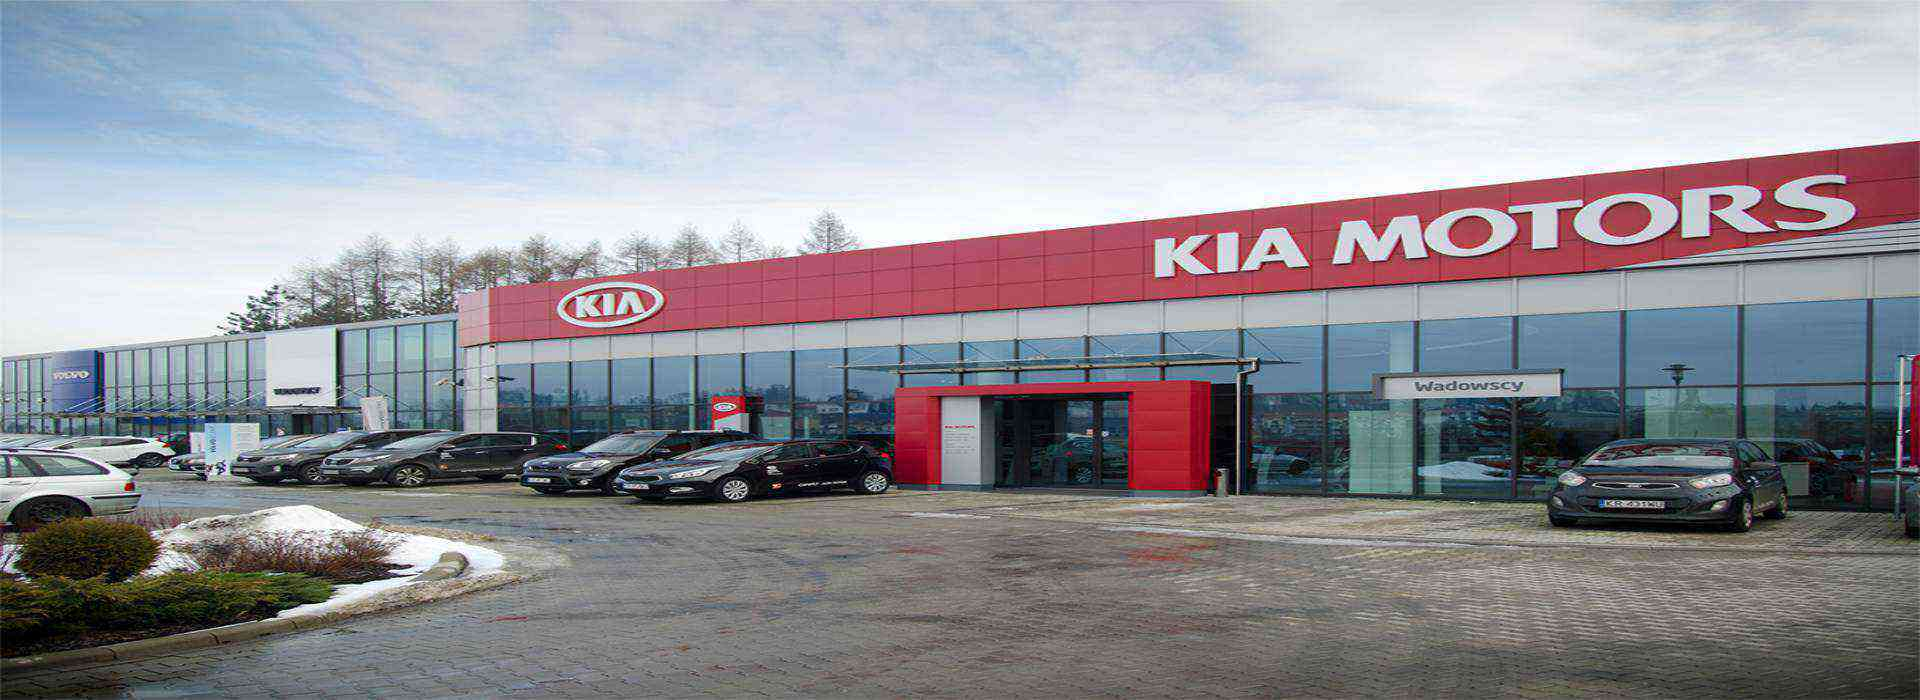 kia motors customer service number australia address